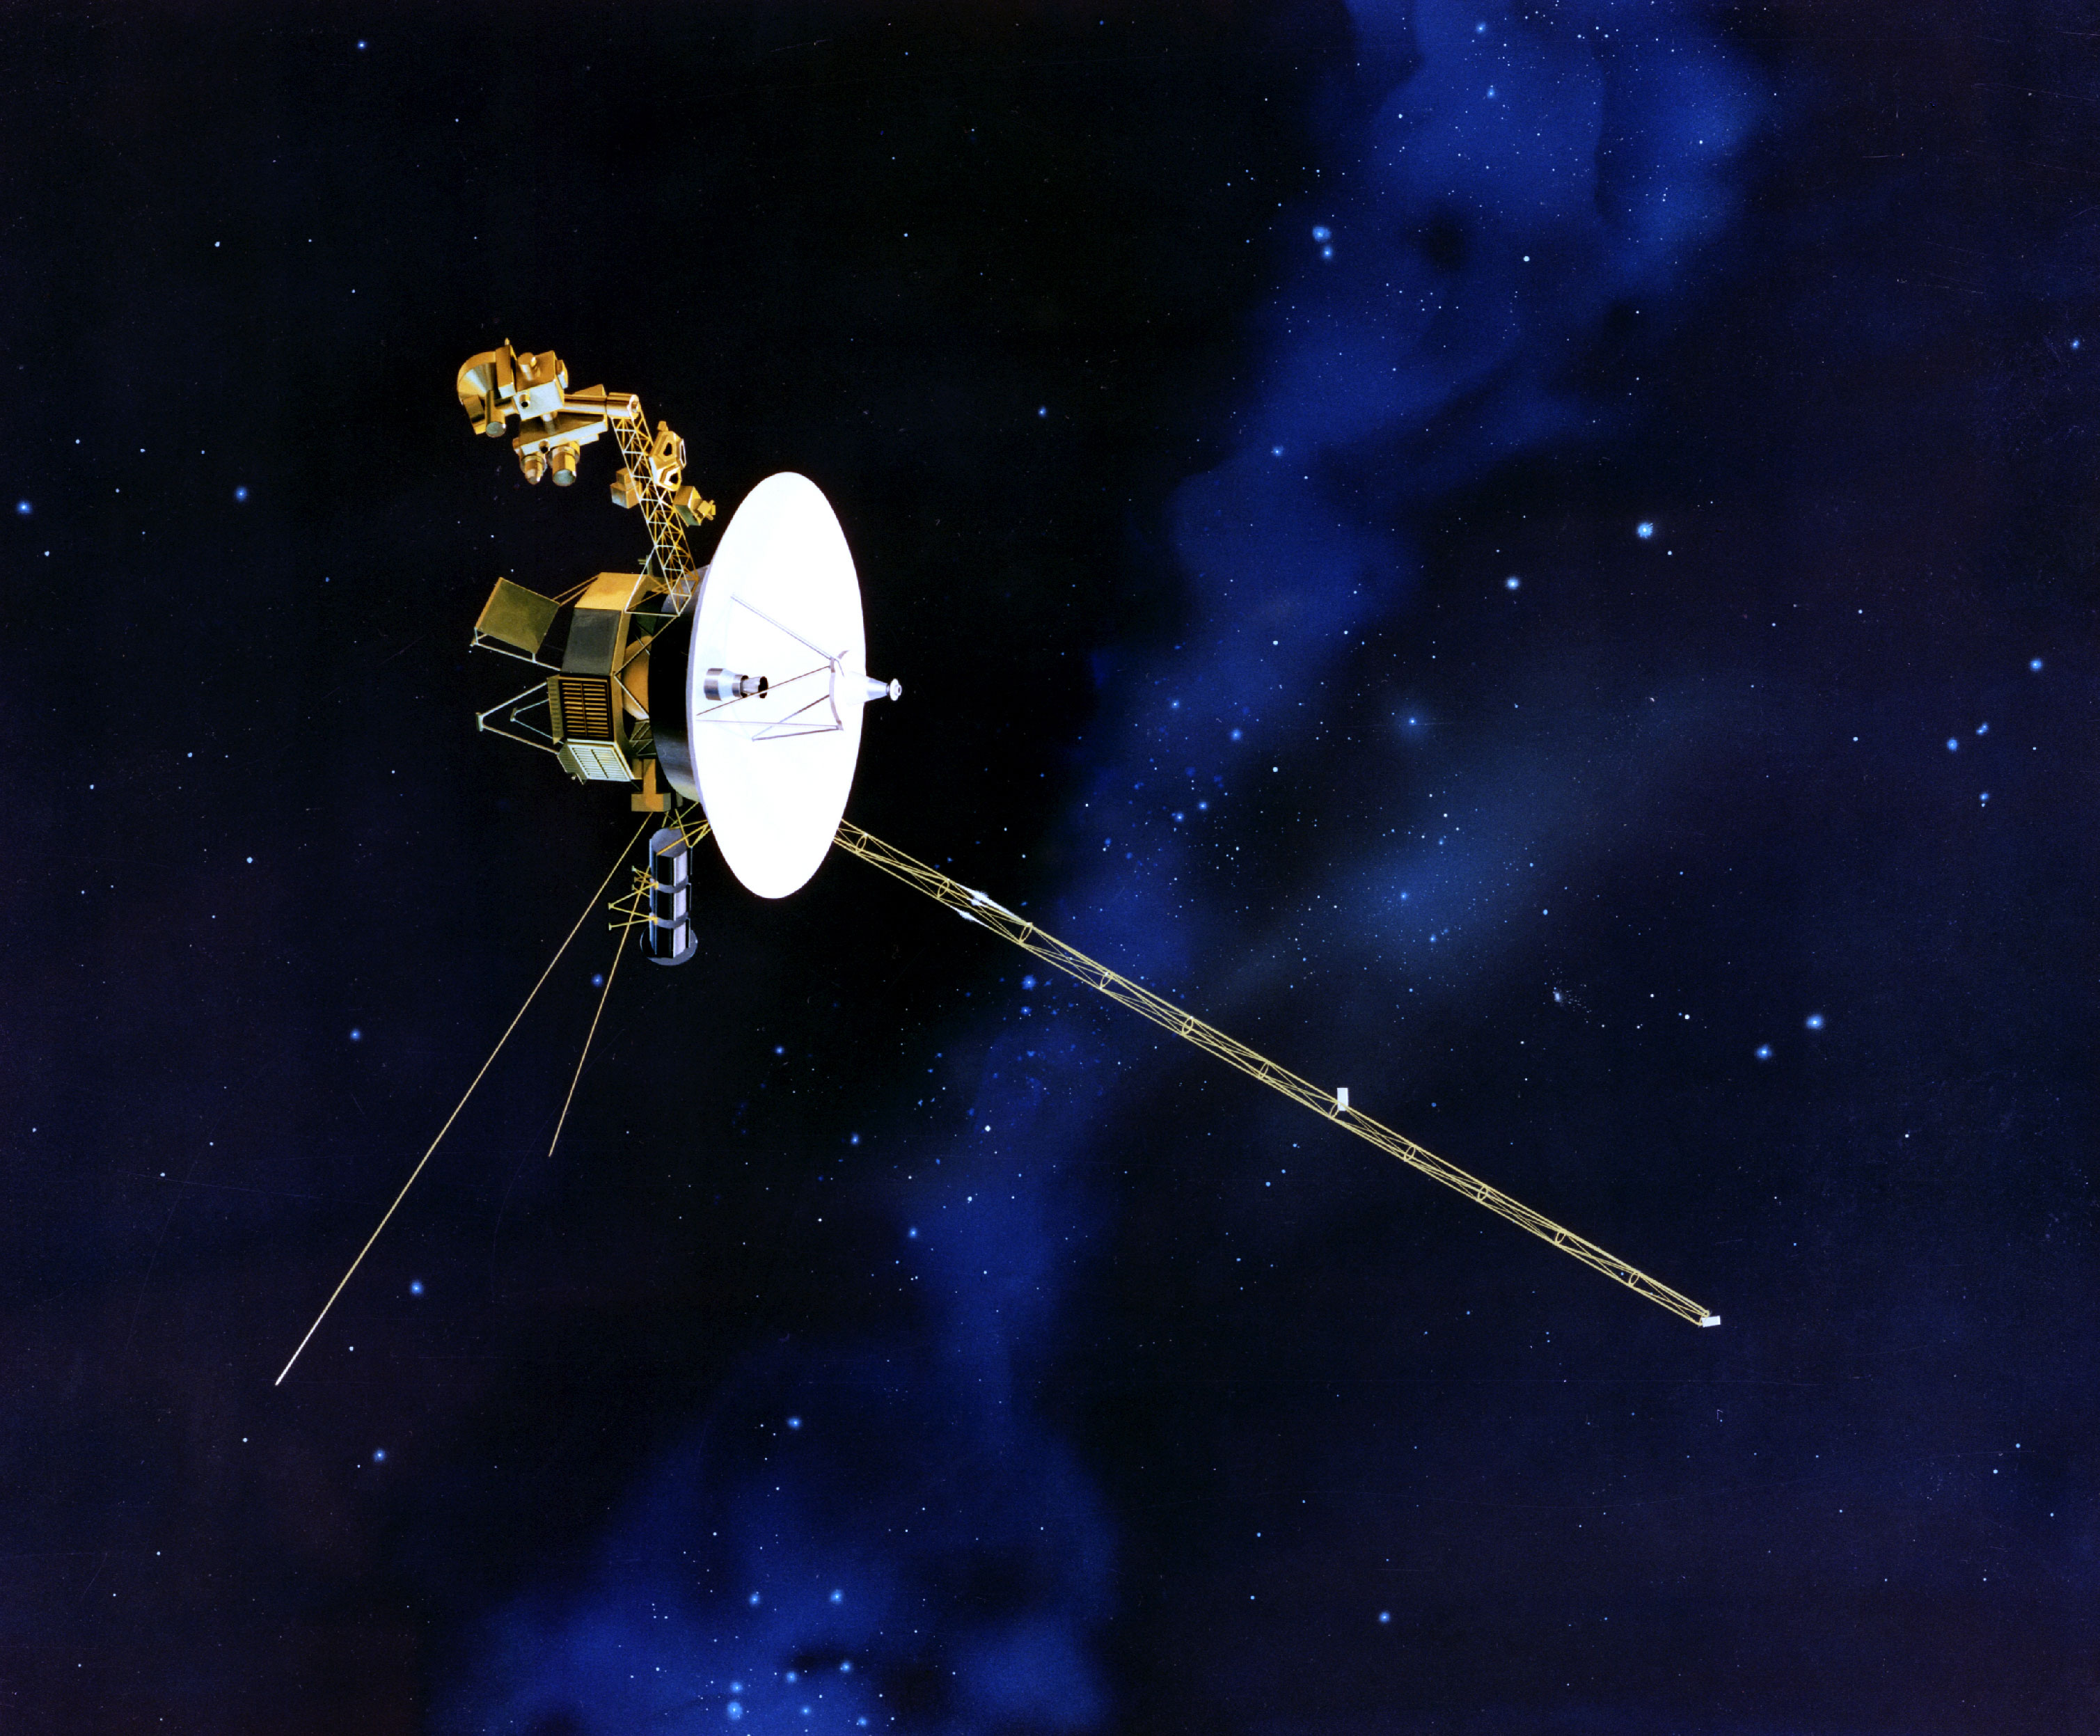 The Voyager probe, now escaping Solar System thanks to gravity assist. Source: NASA/JPL